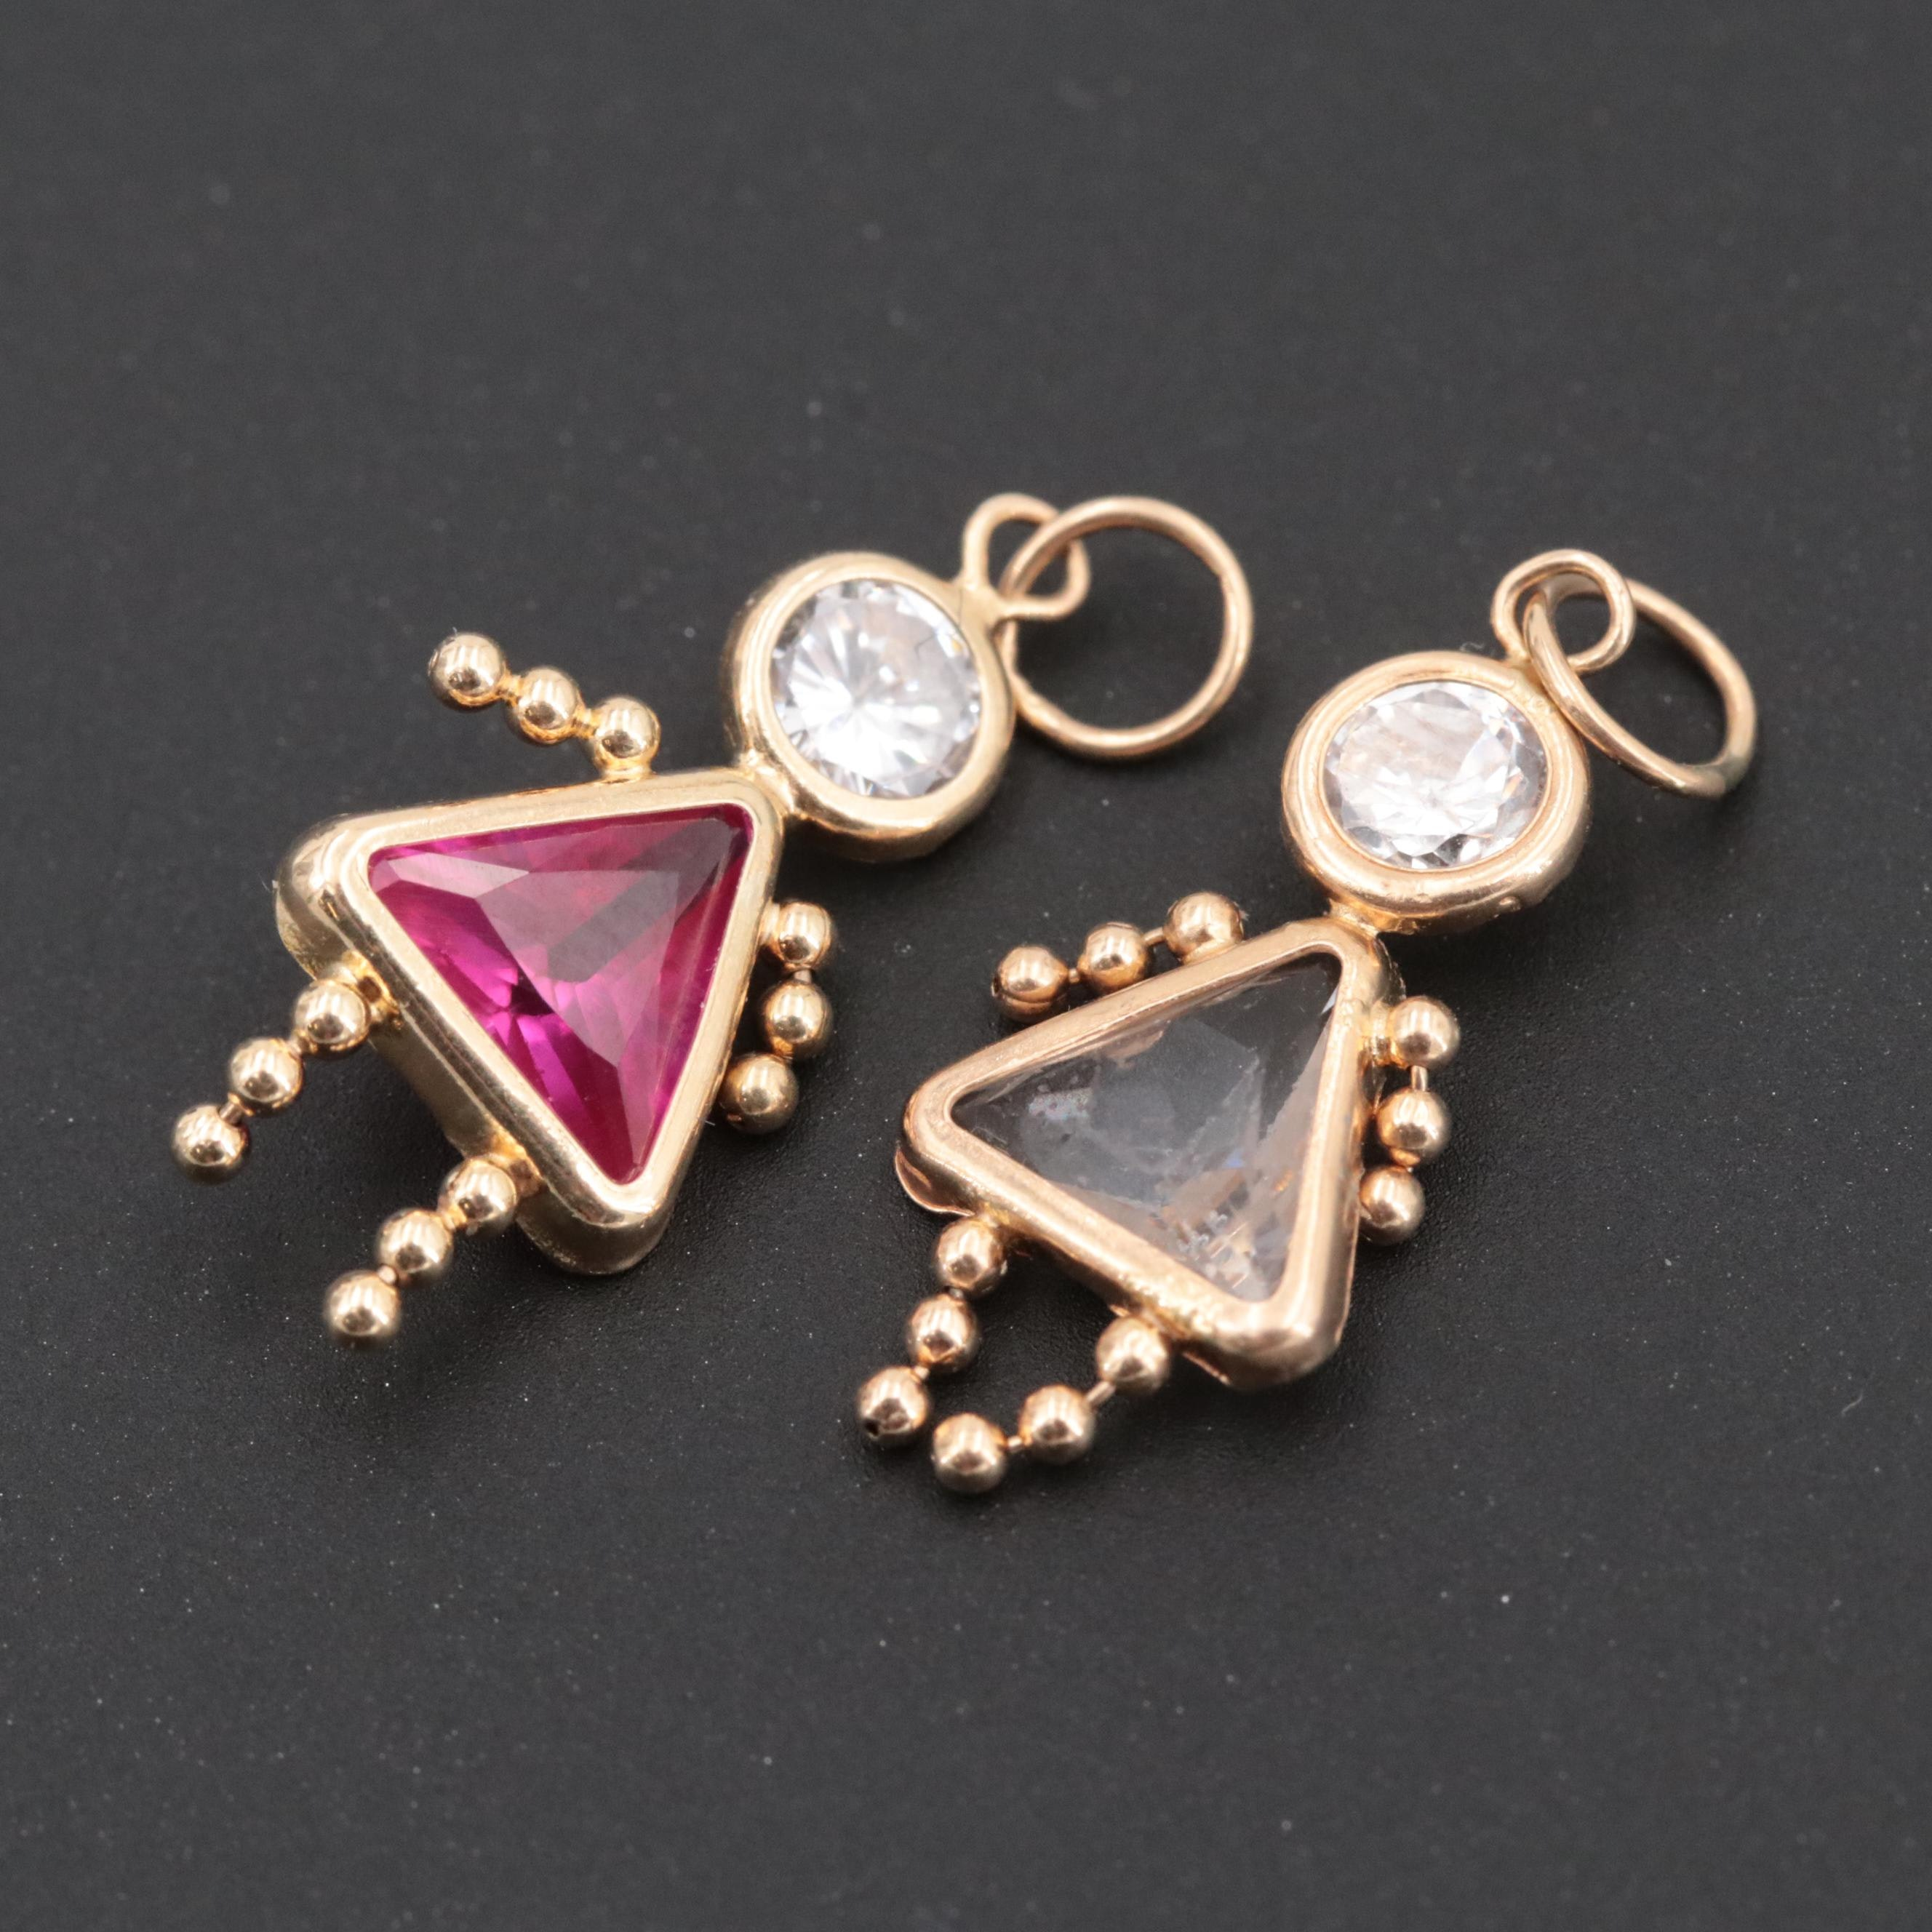 14K Yellow Gold Cubic Zirconia and Synthetic Ruby Figural Pendants